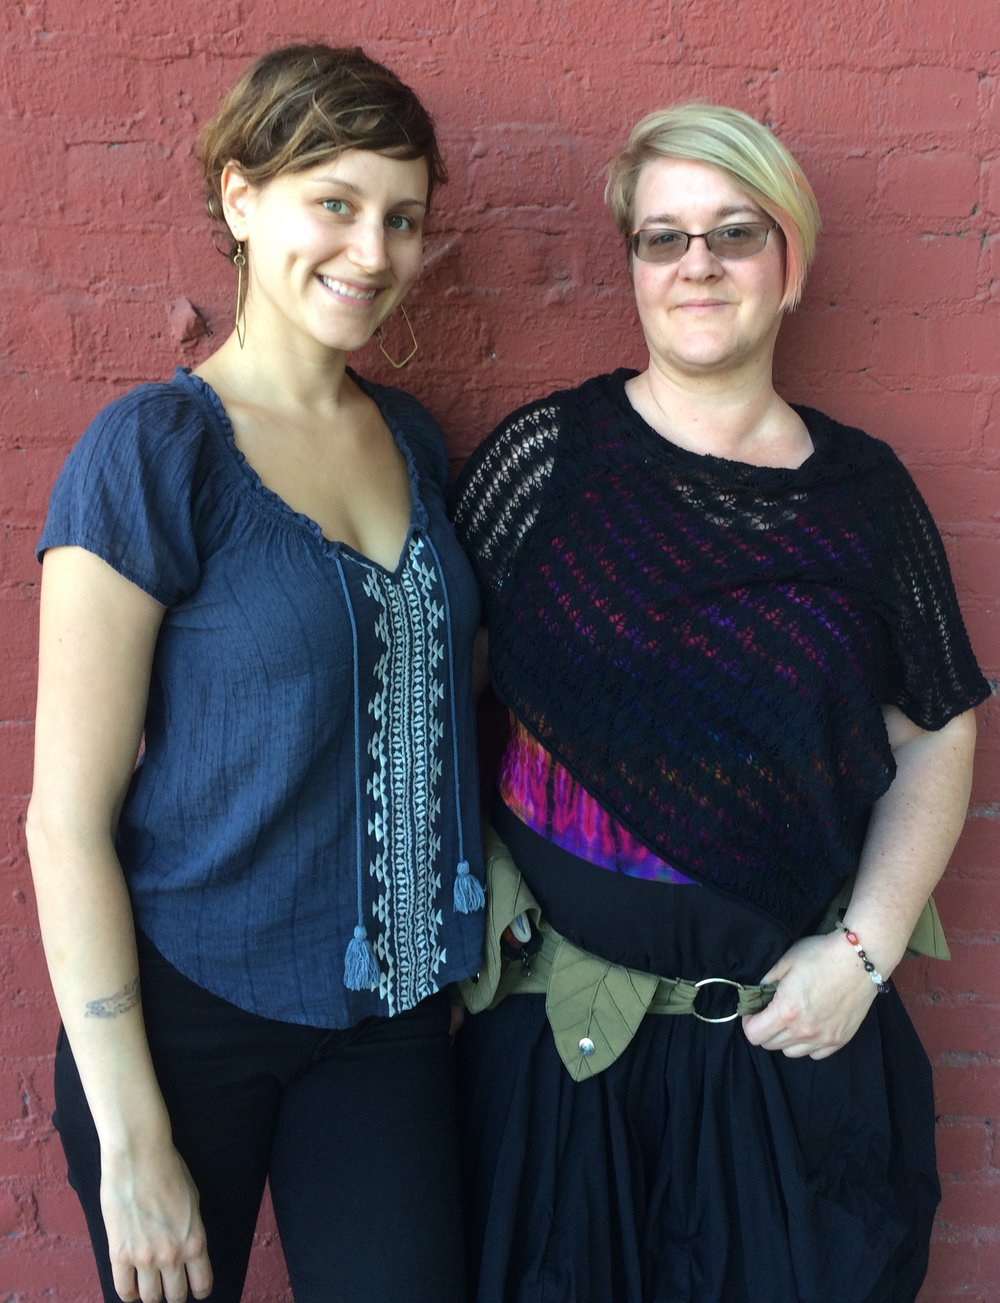 Halley Miglietta (left) and Michaela at Halley's studio in The Urban Hive, Sacramento.